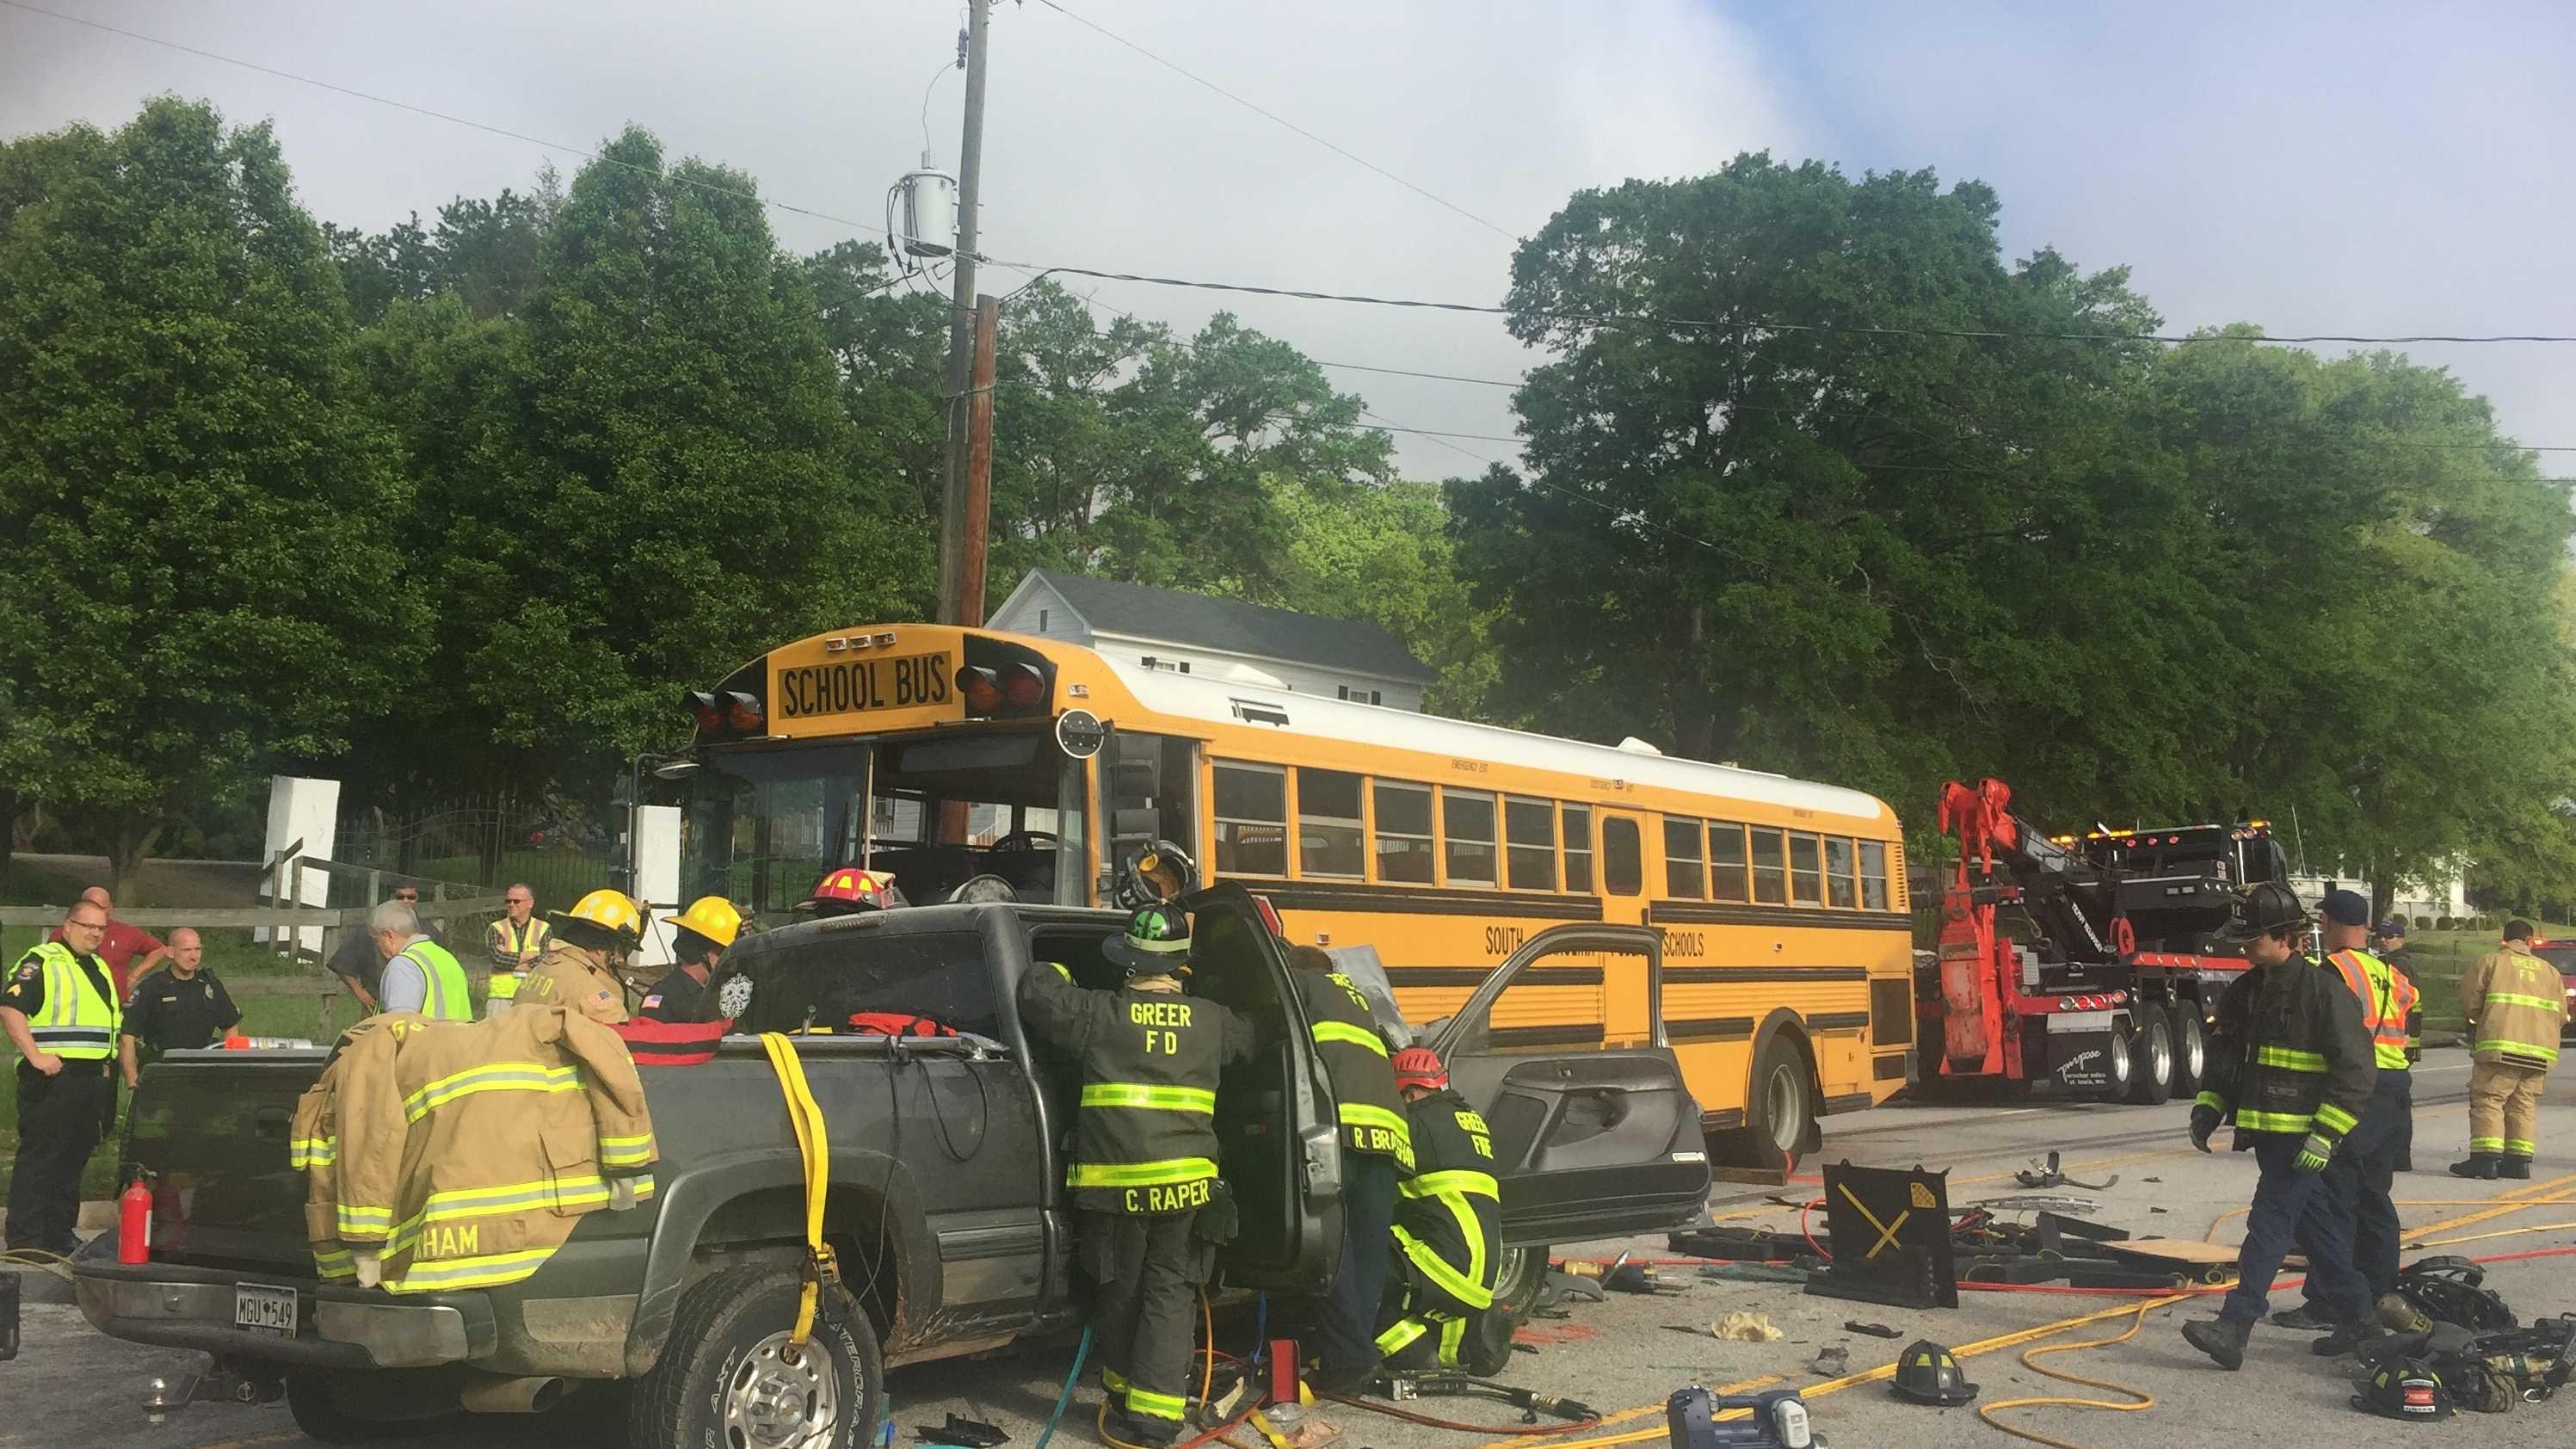 Greenville County School bus crash